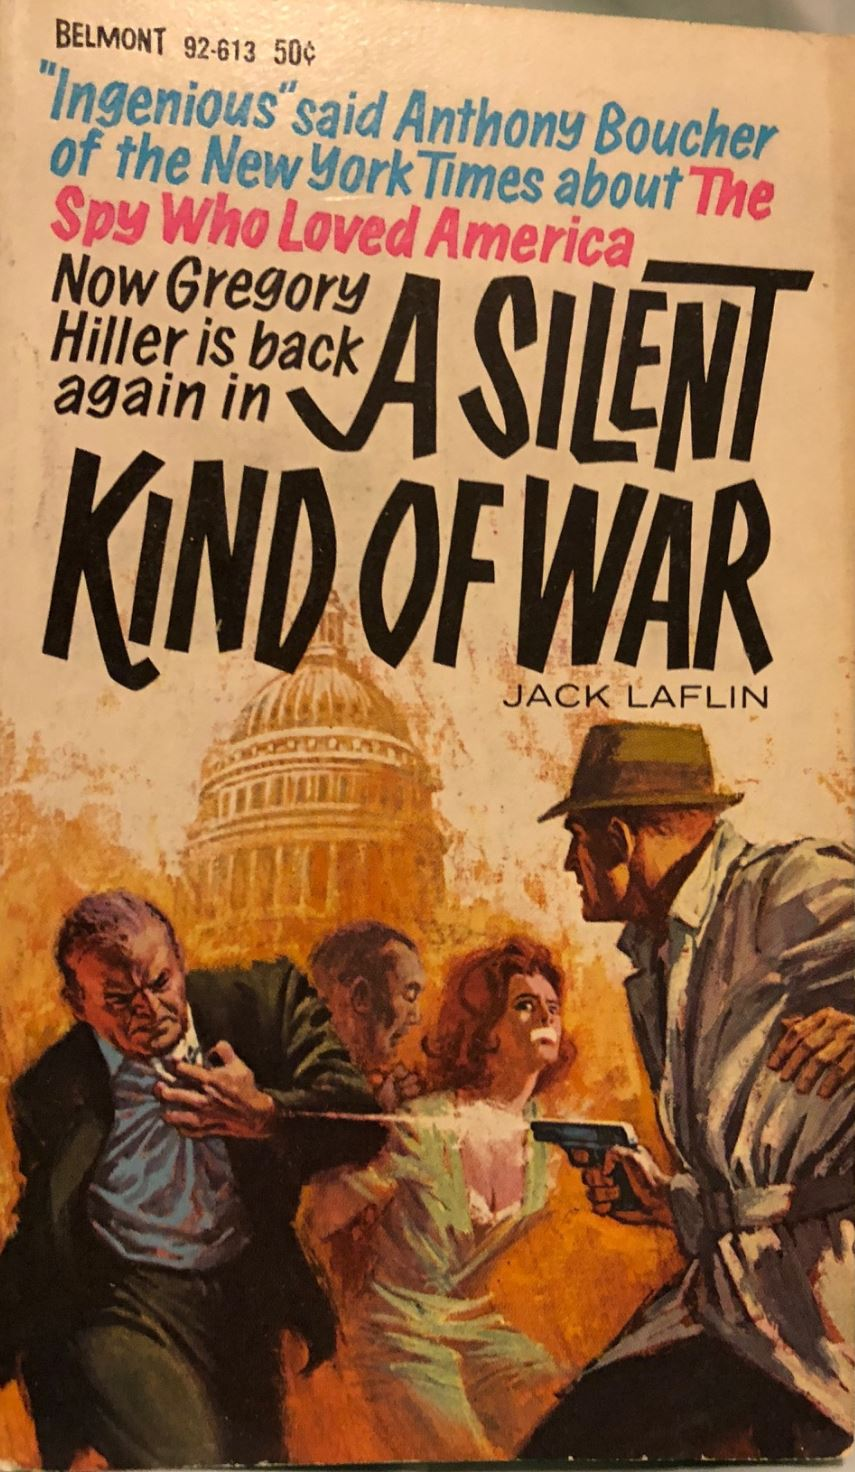 Paperback warrior march 2018 following the success of ian flemings novels nearly every paperback publisher of the 1960s commissioned espionage series novels with varying results fandeluxe